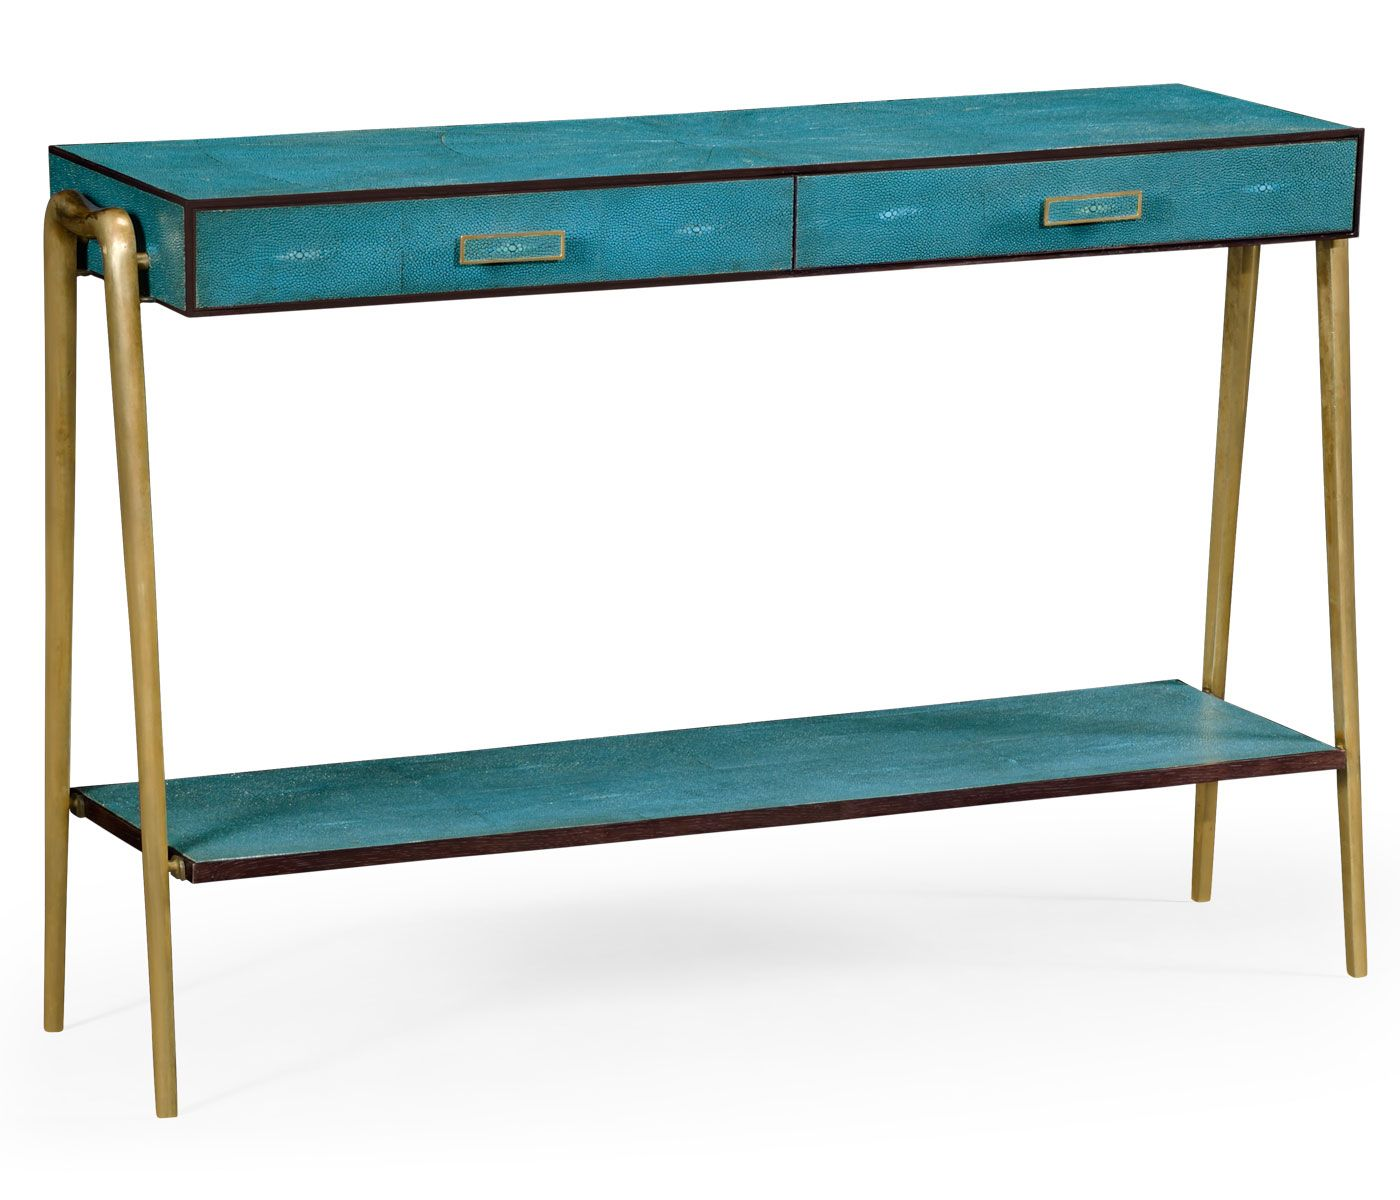 TOP PICK By Beth Dotolo + Carolina V Gentry - http://pulpdesignstudios.com - Jonathan Charles - Shagreen Console Table - CBright teal faux shagreen energizes the design, complementing the brass legs and drawer pulls. Showroom: 200 N. Hamilton Suite 125 #hpmkt